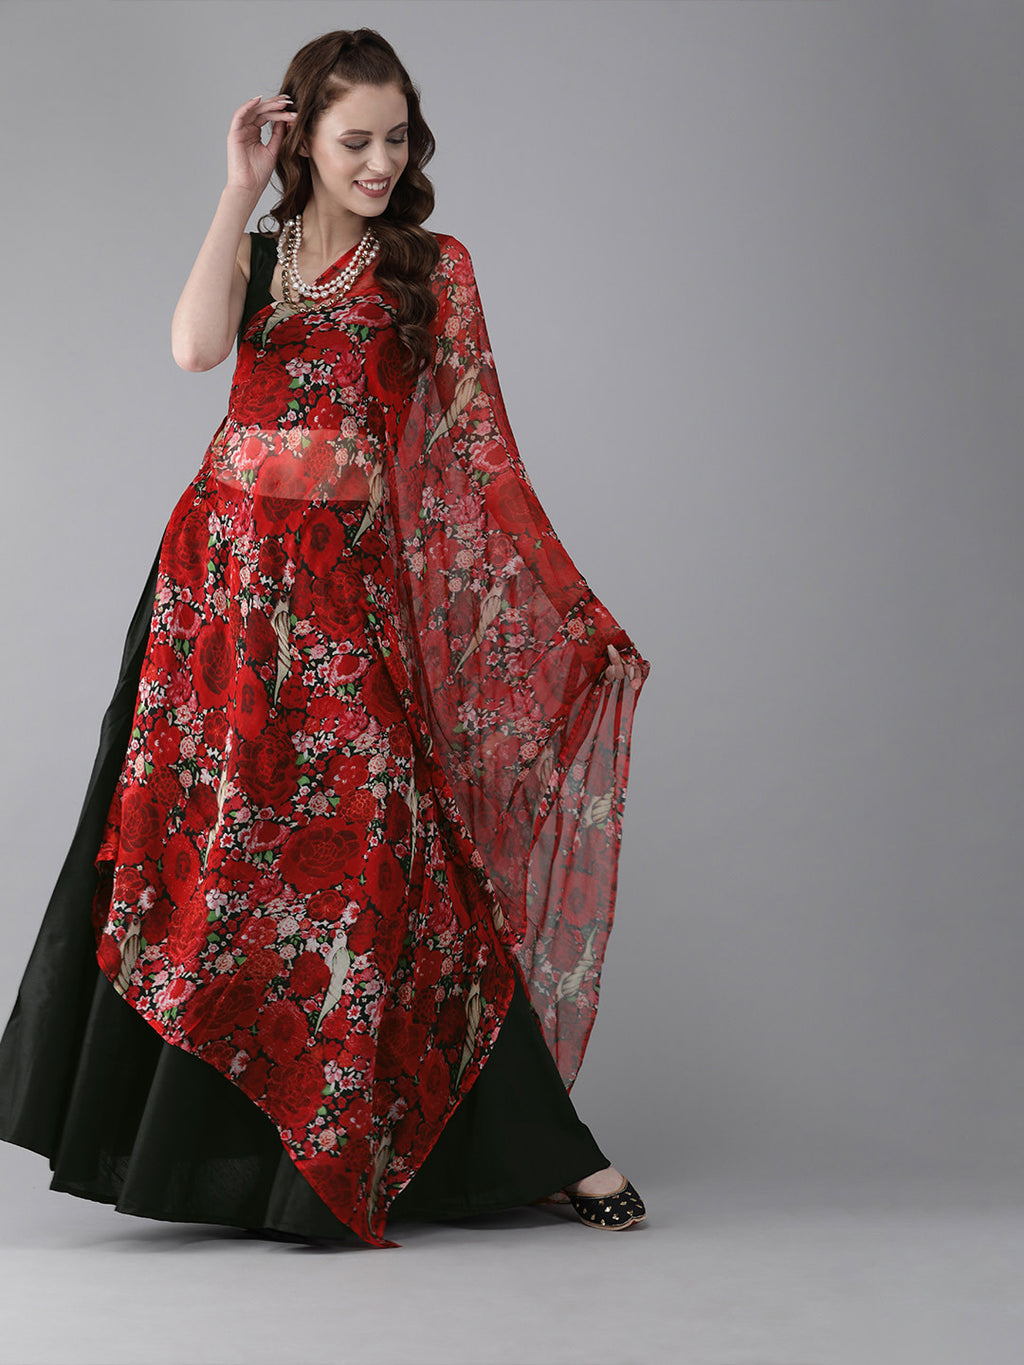 Black & Red Solid Ready to Wear Lehenga & Blouse with Tie-Up Detail Dupatta